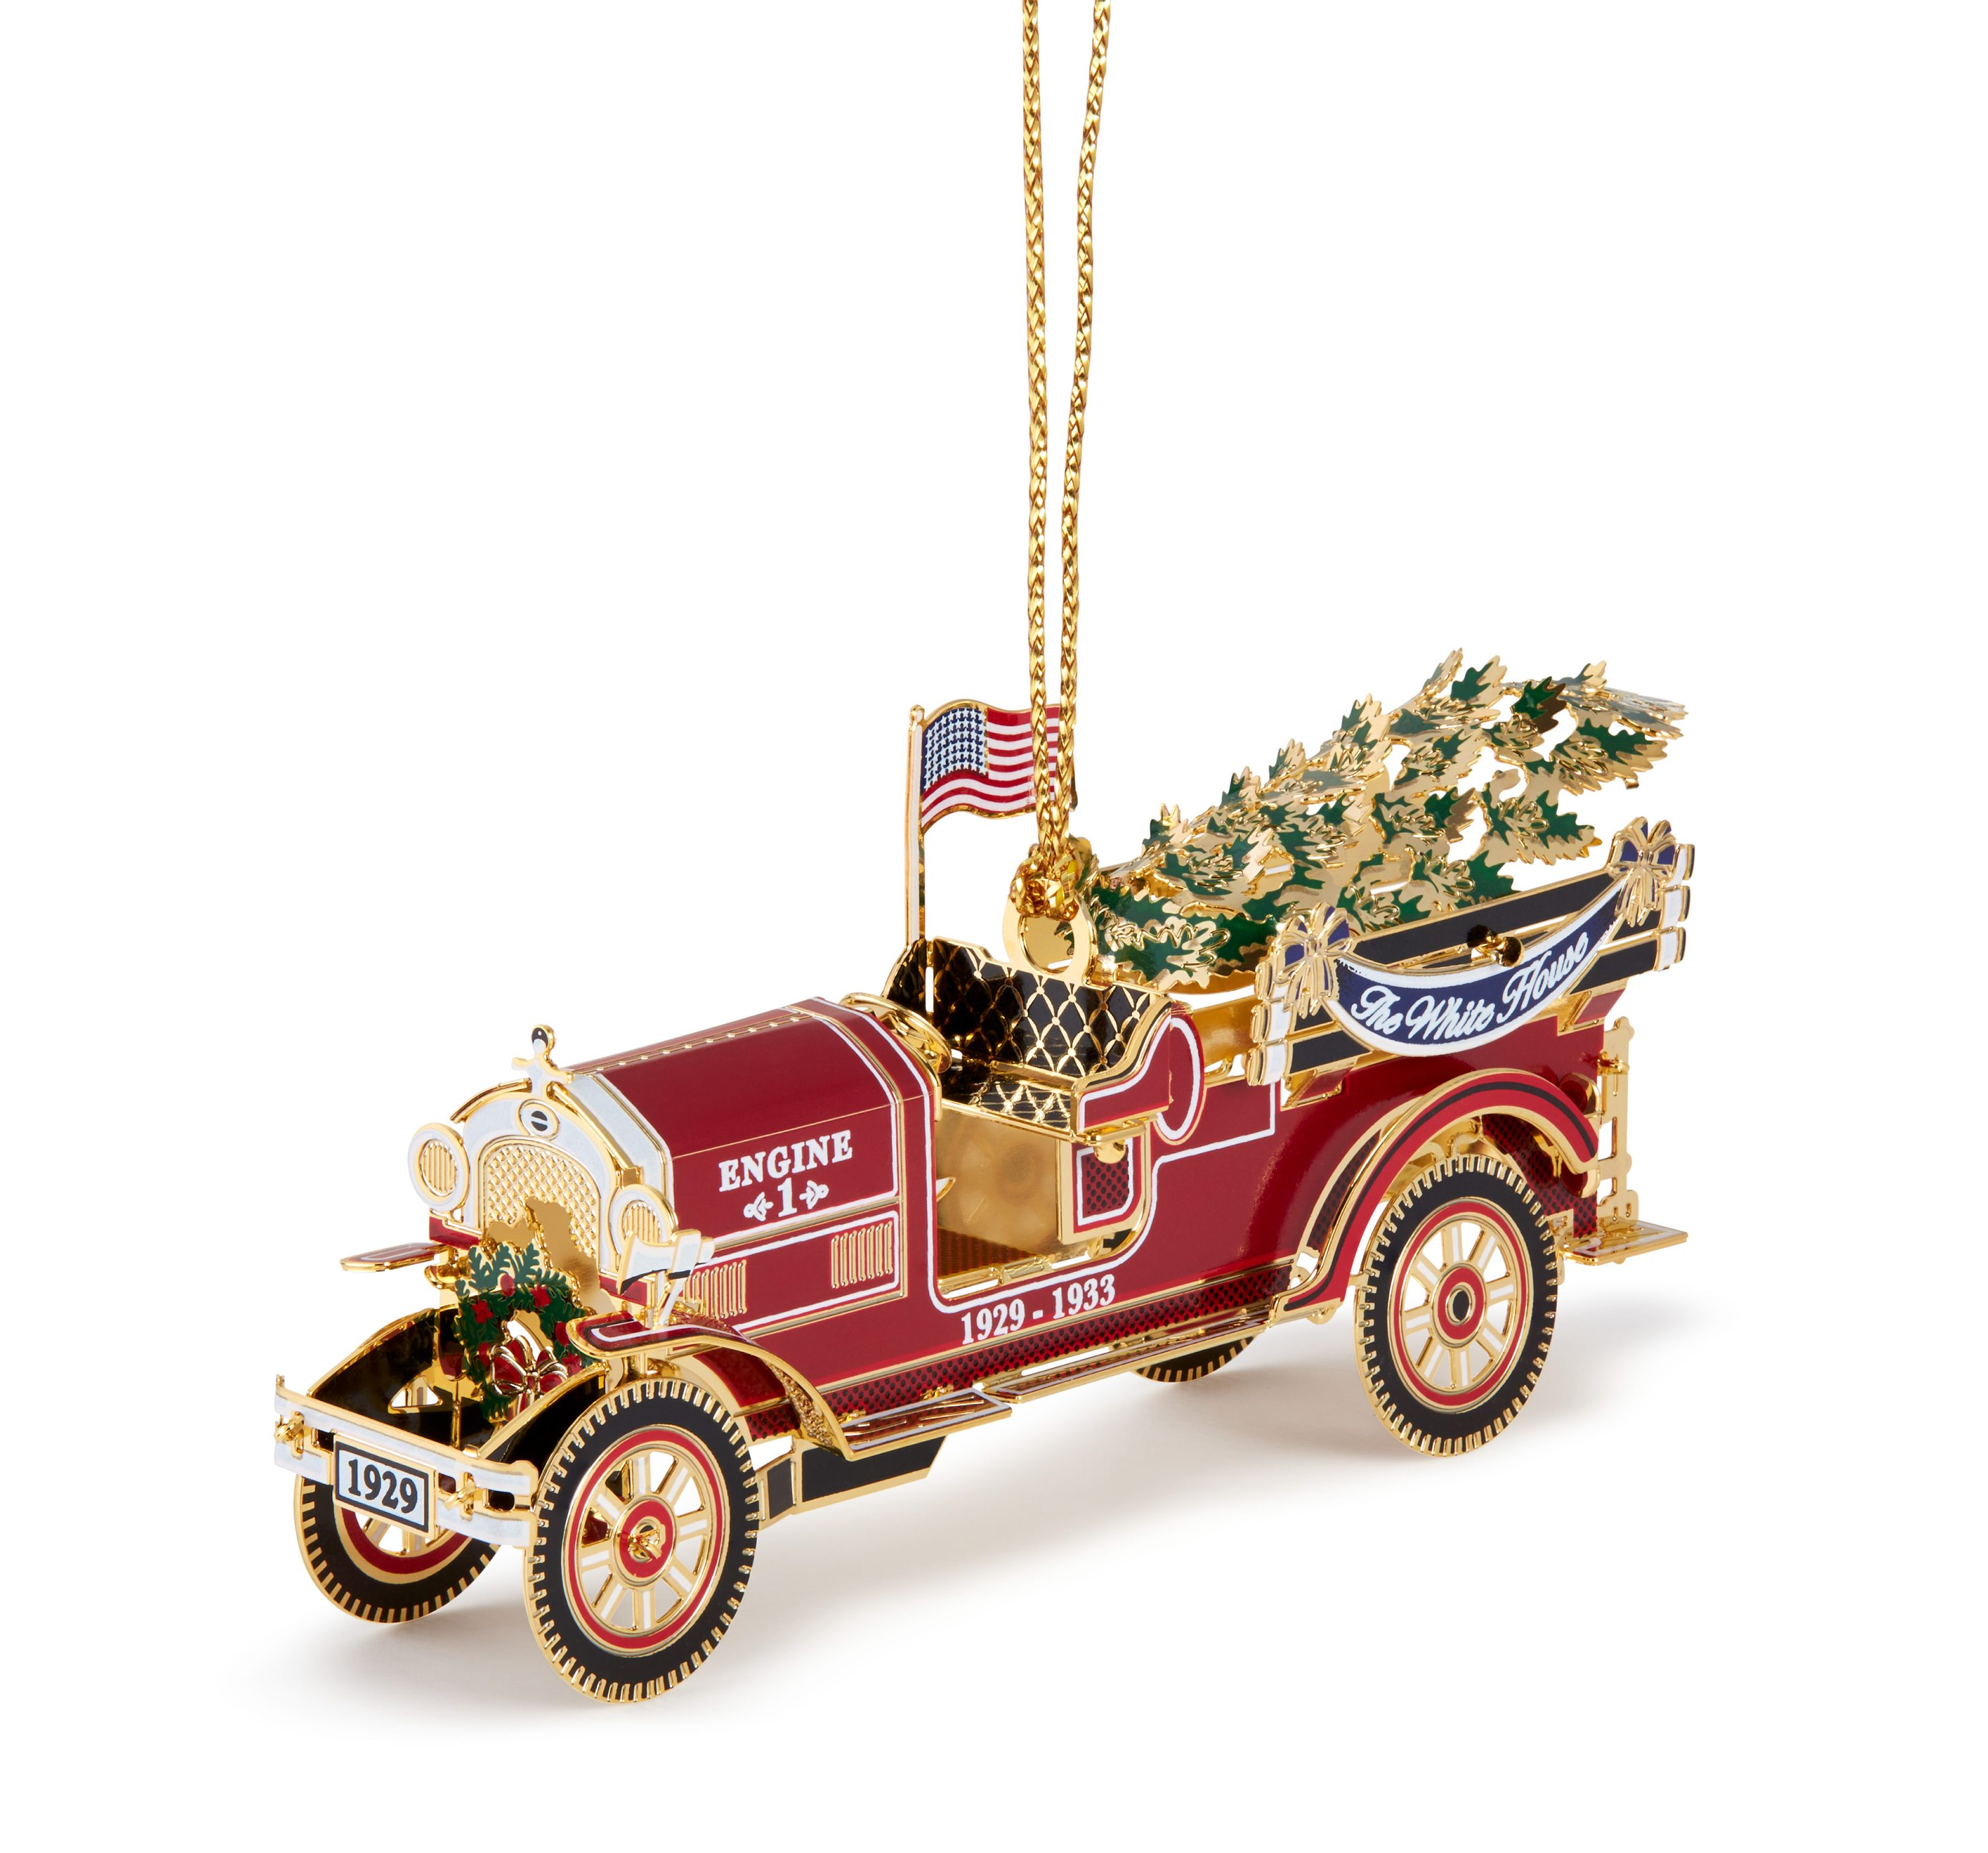 This image is the 3-Quarter Left view (with string) of the 2016 White House Christmas Ornament that honors President Herbert Hoover, the 31st President of the United States who was in office from 1929 to 1933. Inspired by the fire engines that responded to a 1929 Christmas Eve fire at the White House, the ornament also honors the toy trucks that were presented to children by the Hoovers' the following Christmas.